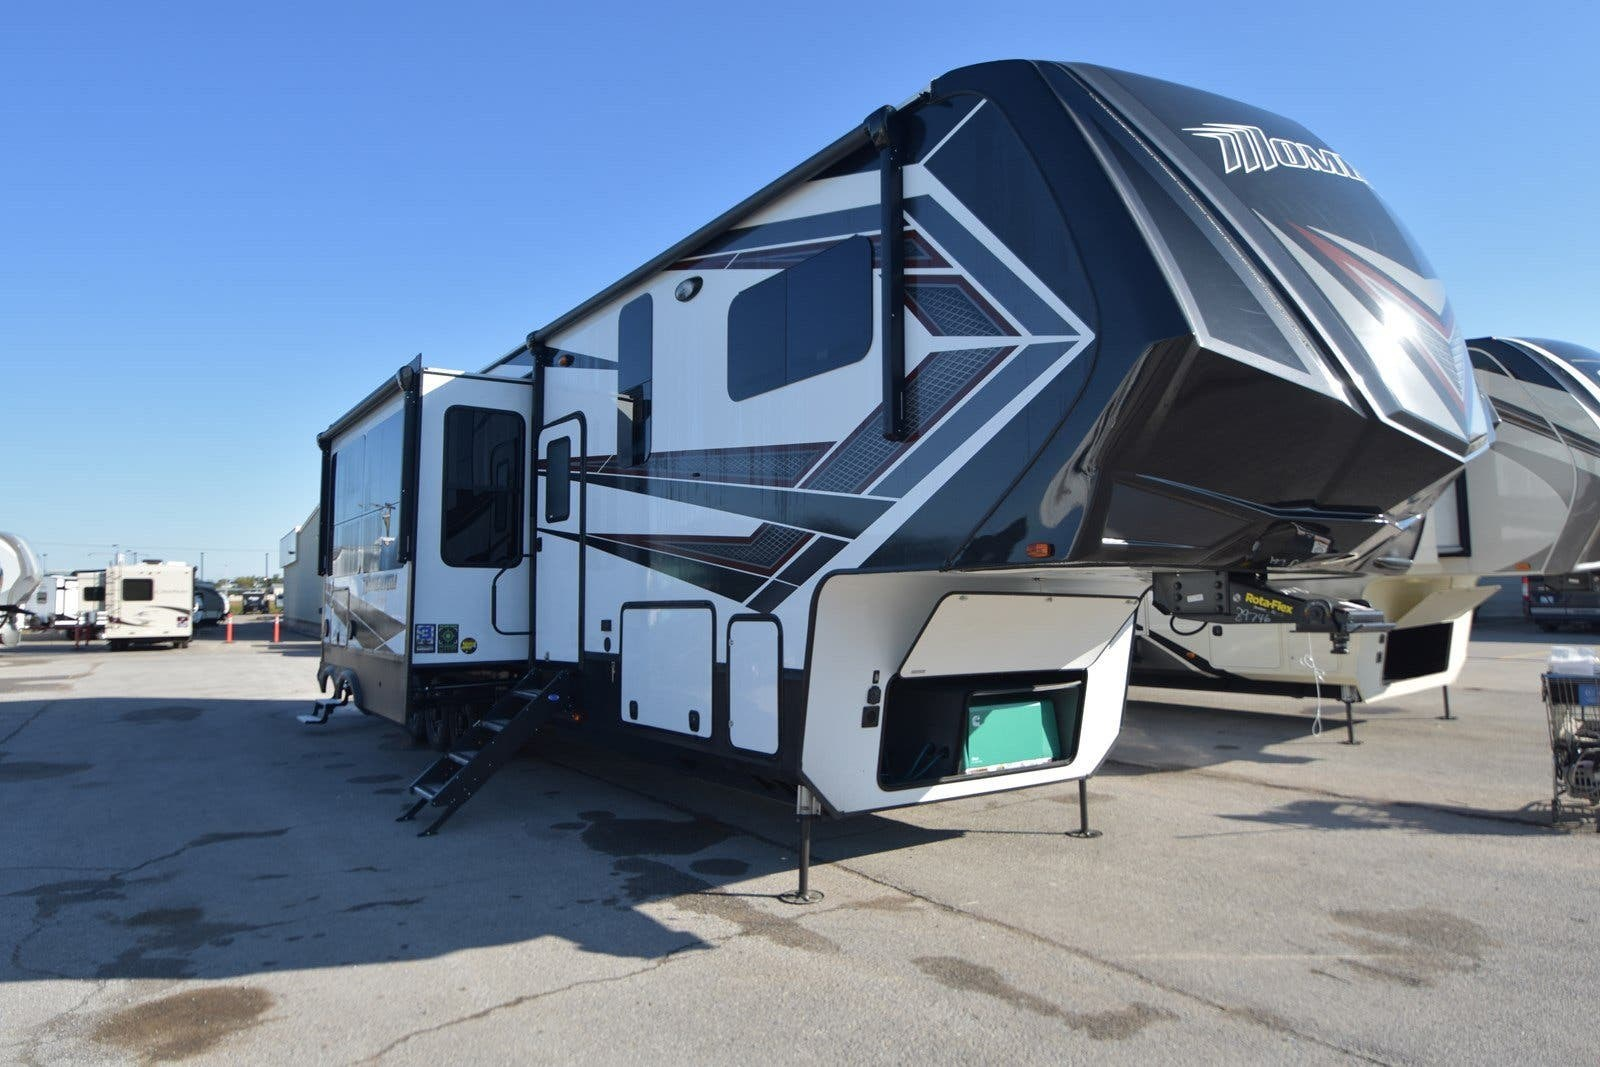 Garage Innovations Oklahoma City 2019 Grand Design Rv Momentum For Sale In Oklahoma City Ok 73127 89746